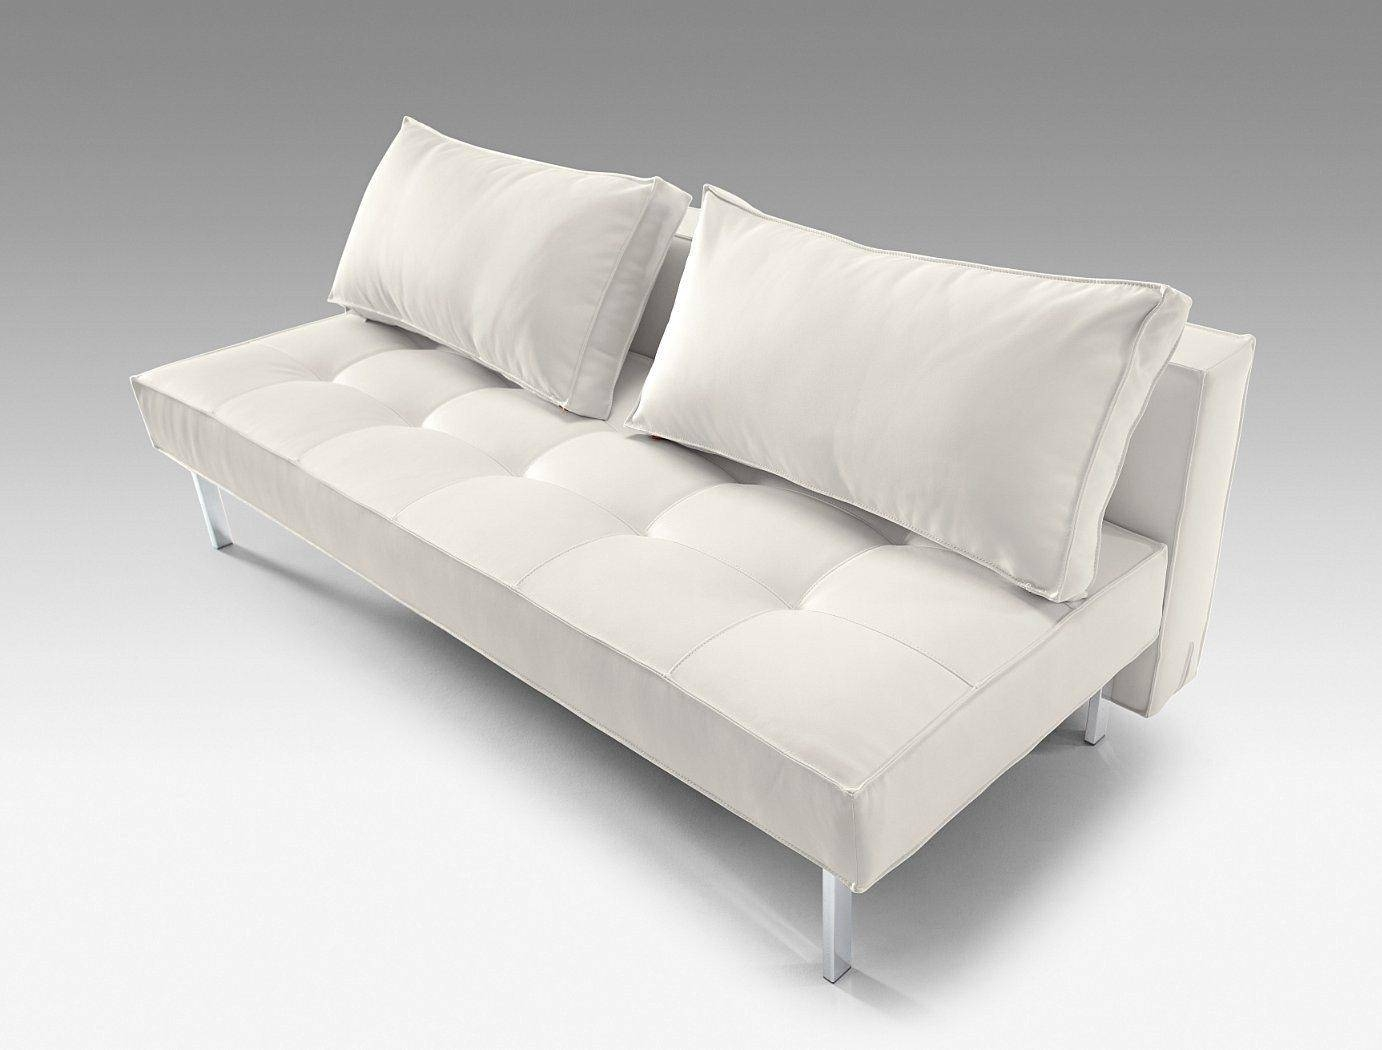 20 Inspirations Euro Sofas | Sofa Ideas in Euro Sofas (Image 3 of 15)